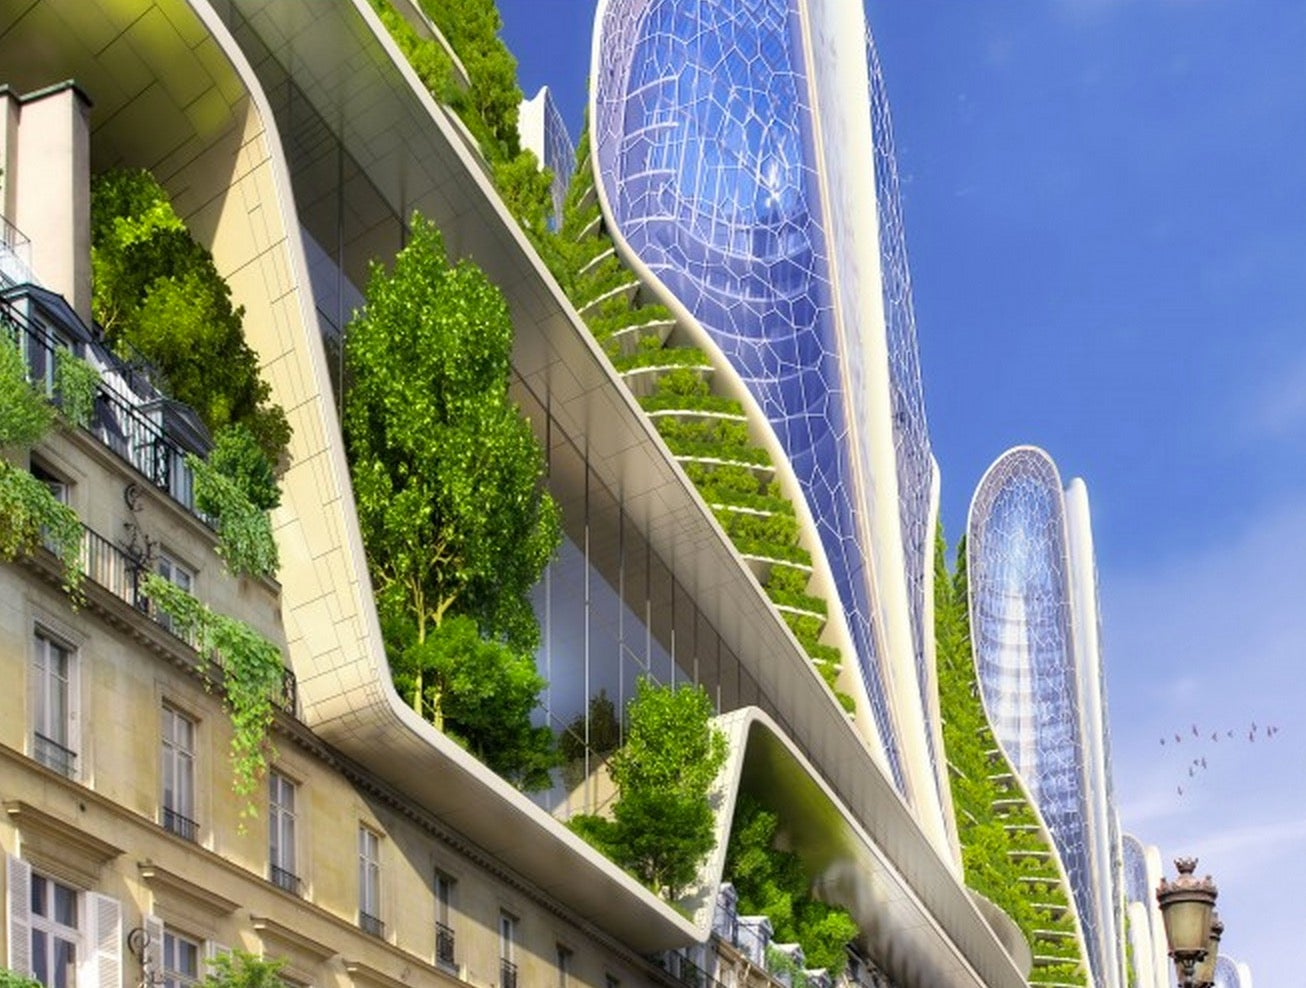 Paris as a Green and Sustainable Future City Is Even More Beautiful